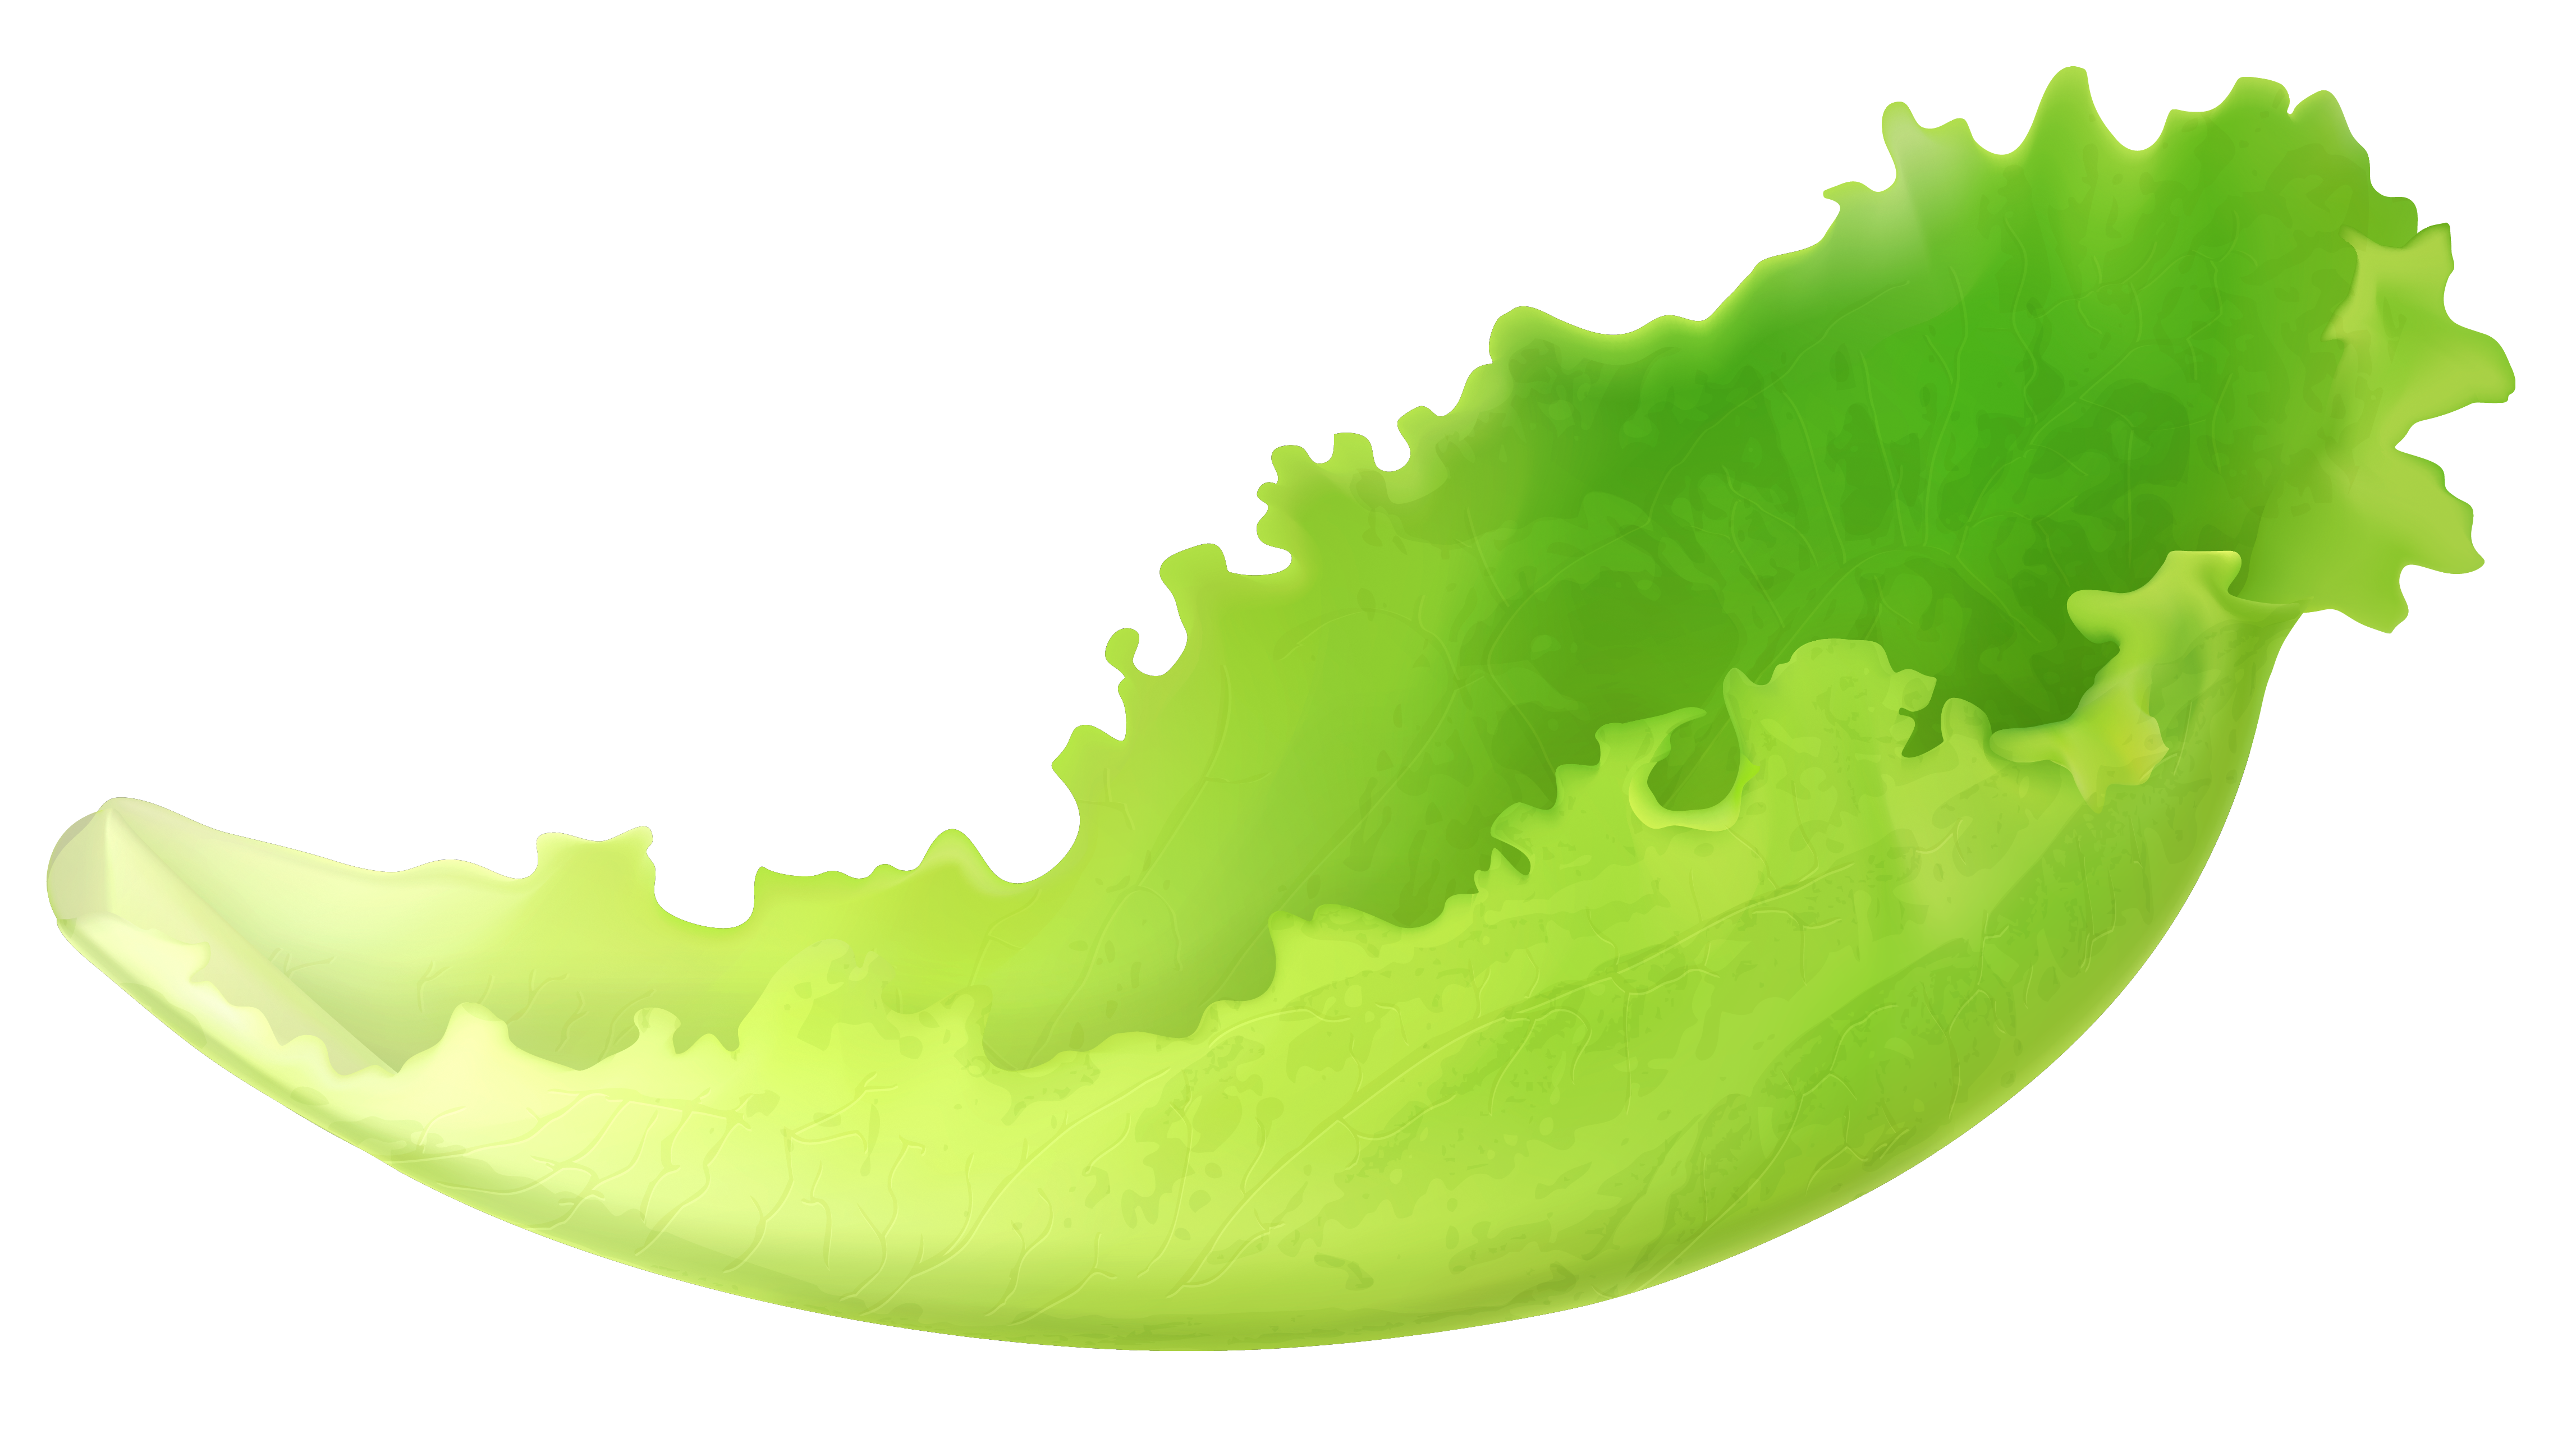 Leaf png gallery yopriceville. Lettuce clipart